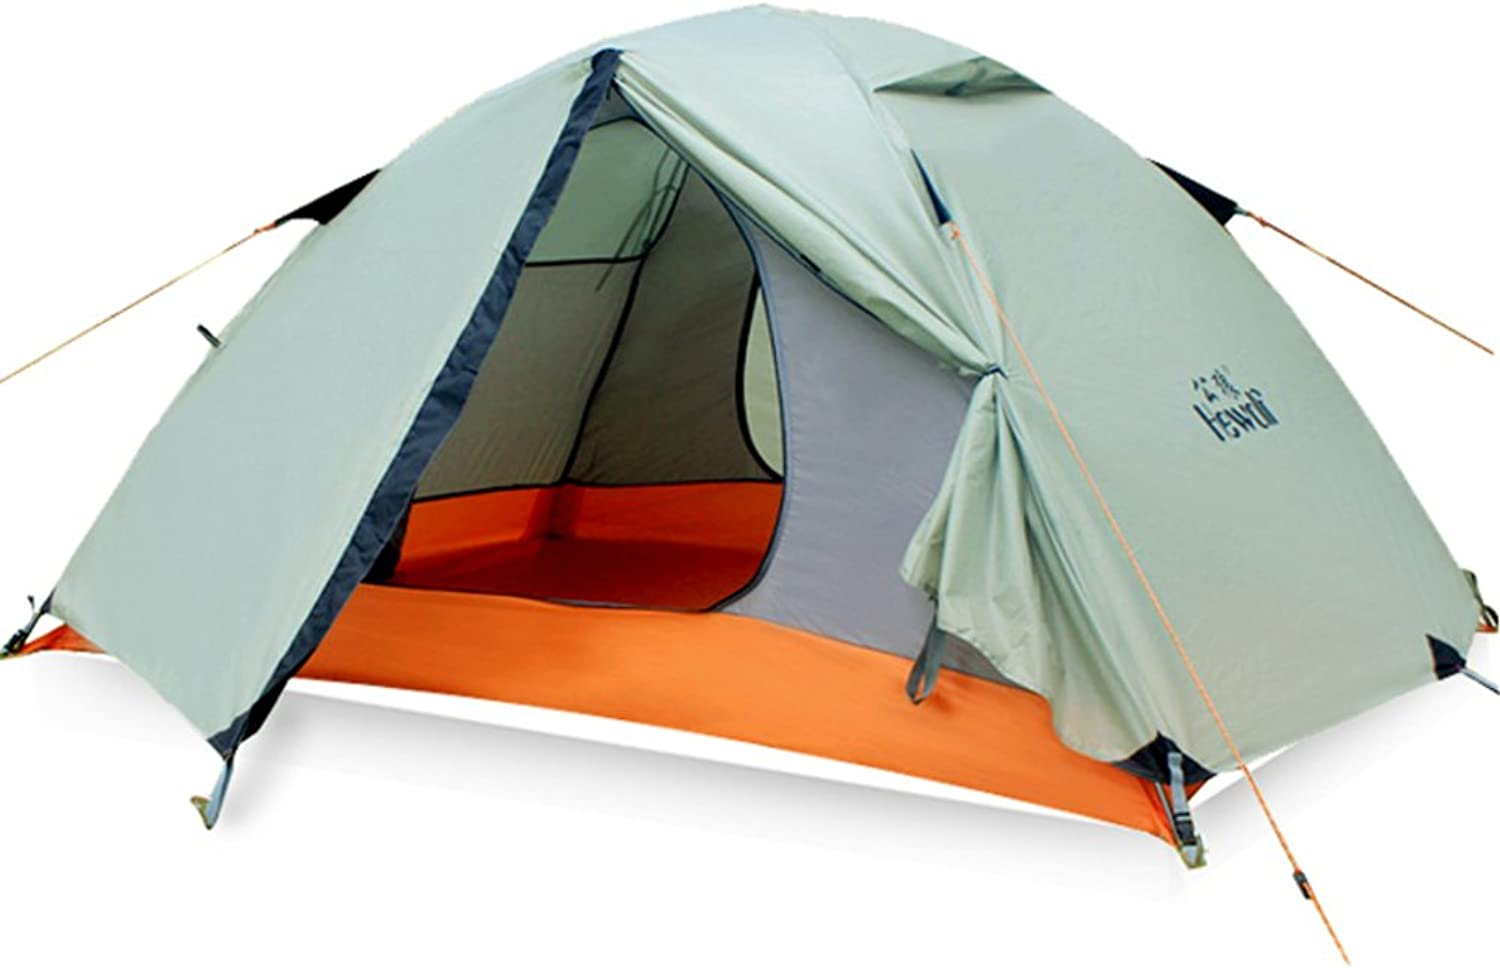 Outdoor double double aluminum pole tent Multiplayer Equipment Beach camping Kit and equipped  camp camp